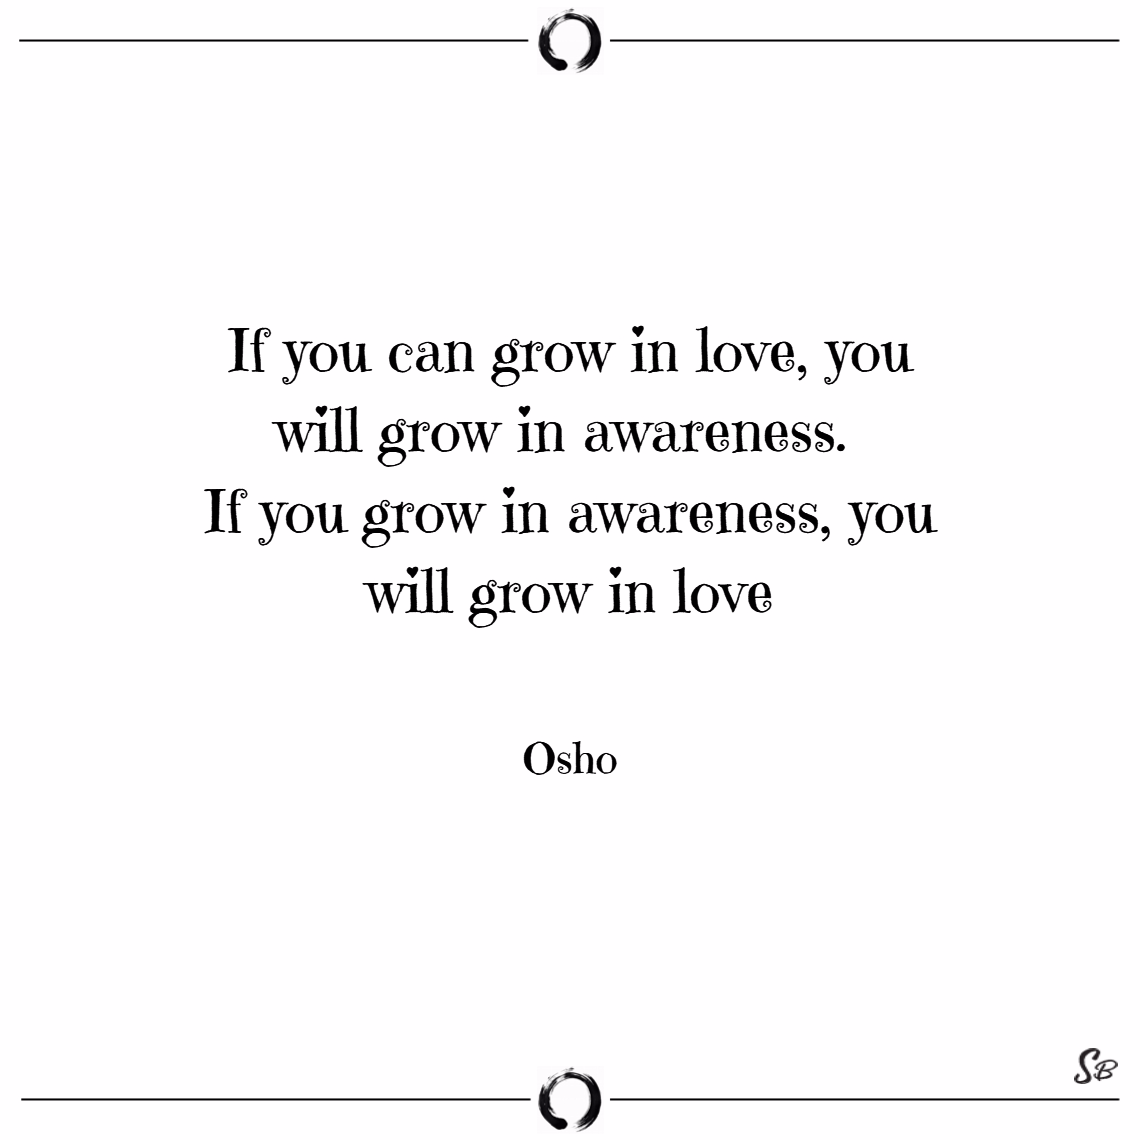 If you can grow in love, you will grow in awarenes